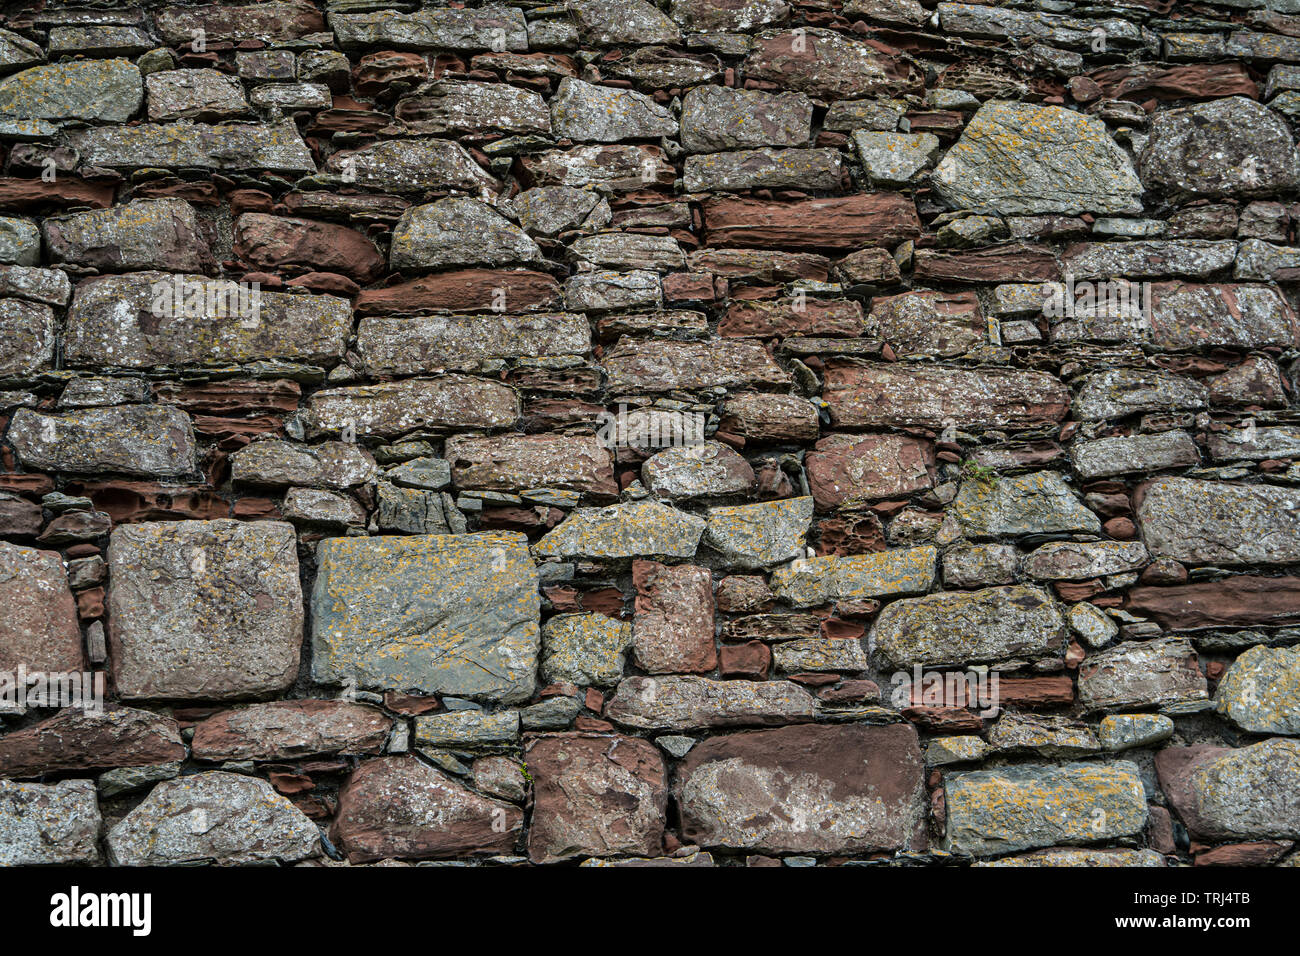 Detail of a stone wall, Peel Castle, Isle of Man, UK - Stock Image